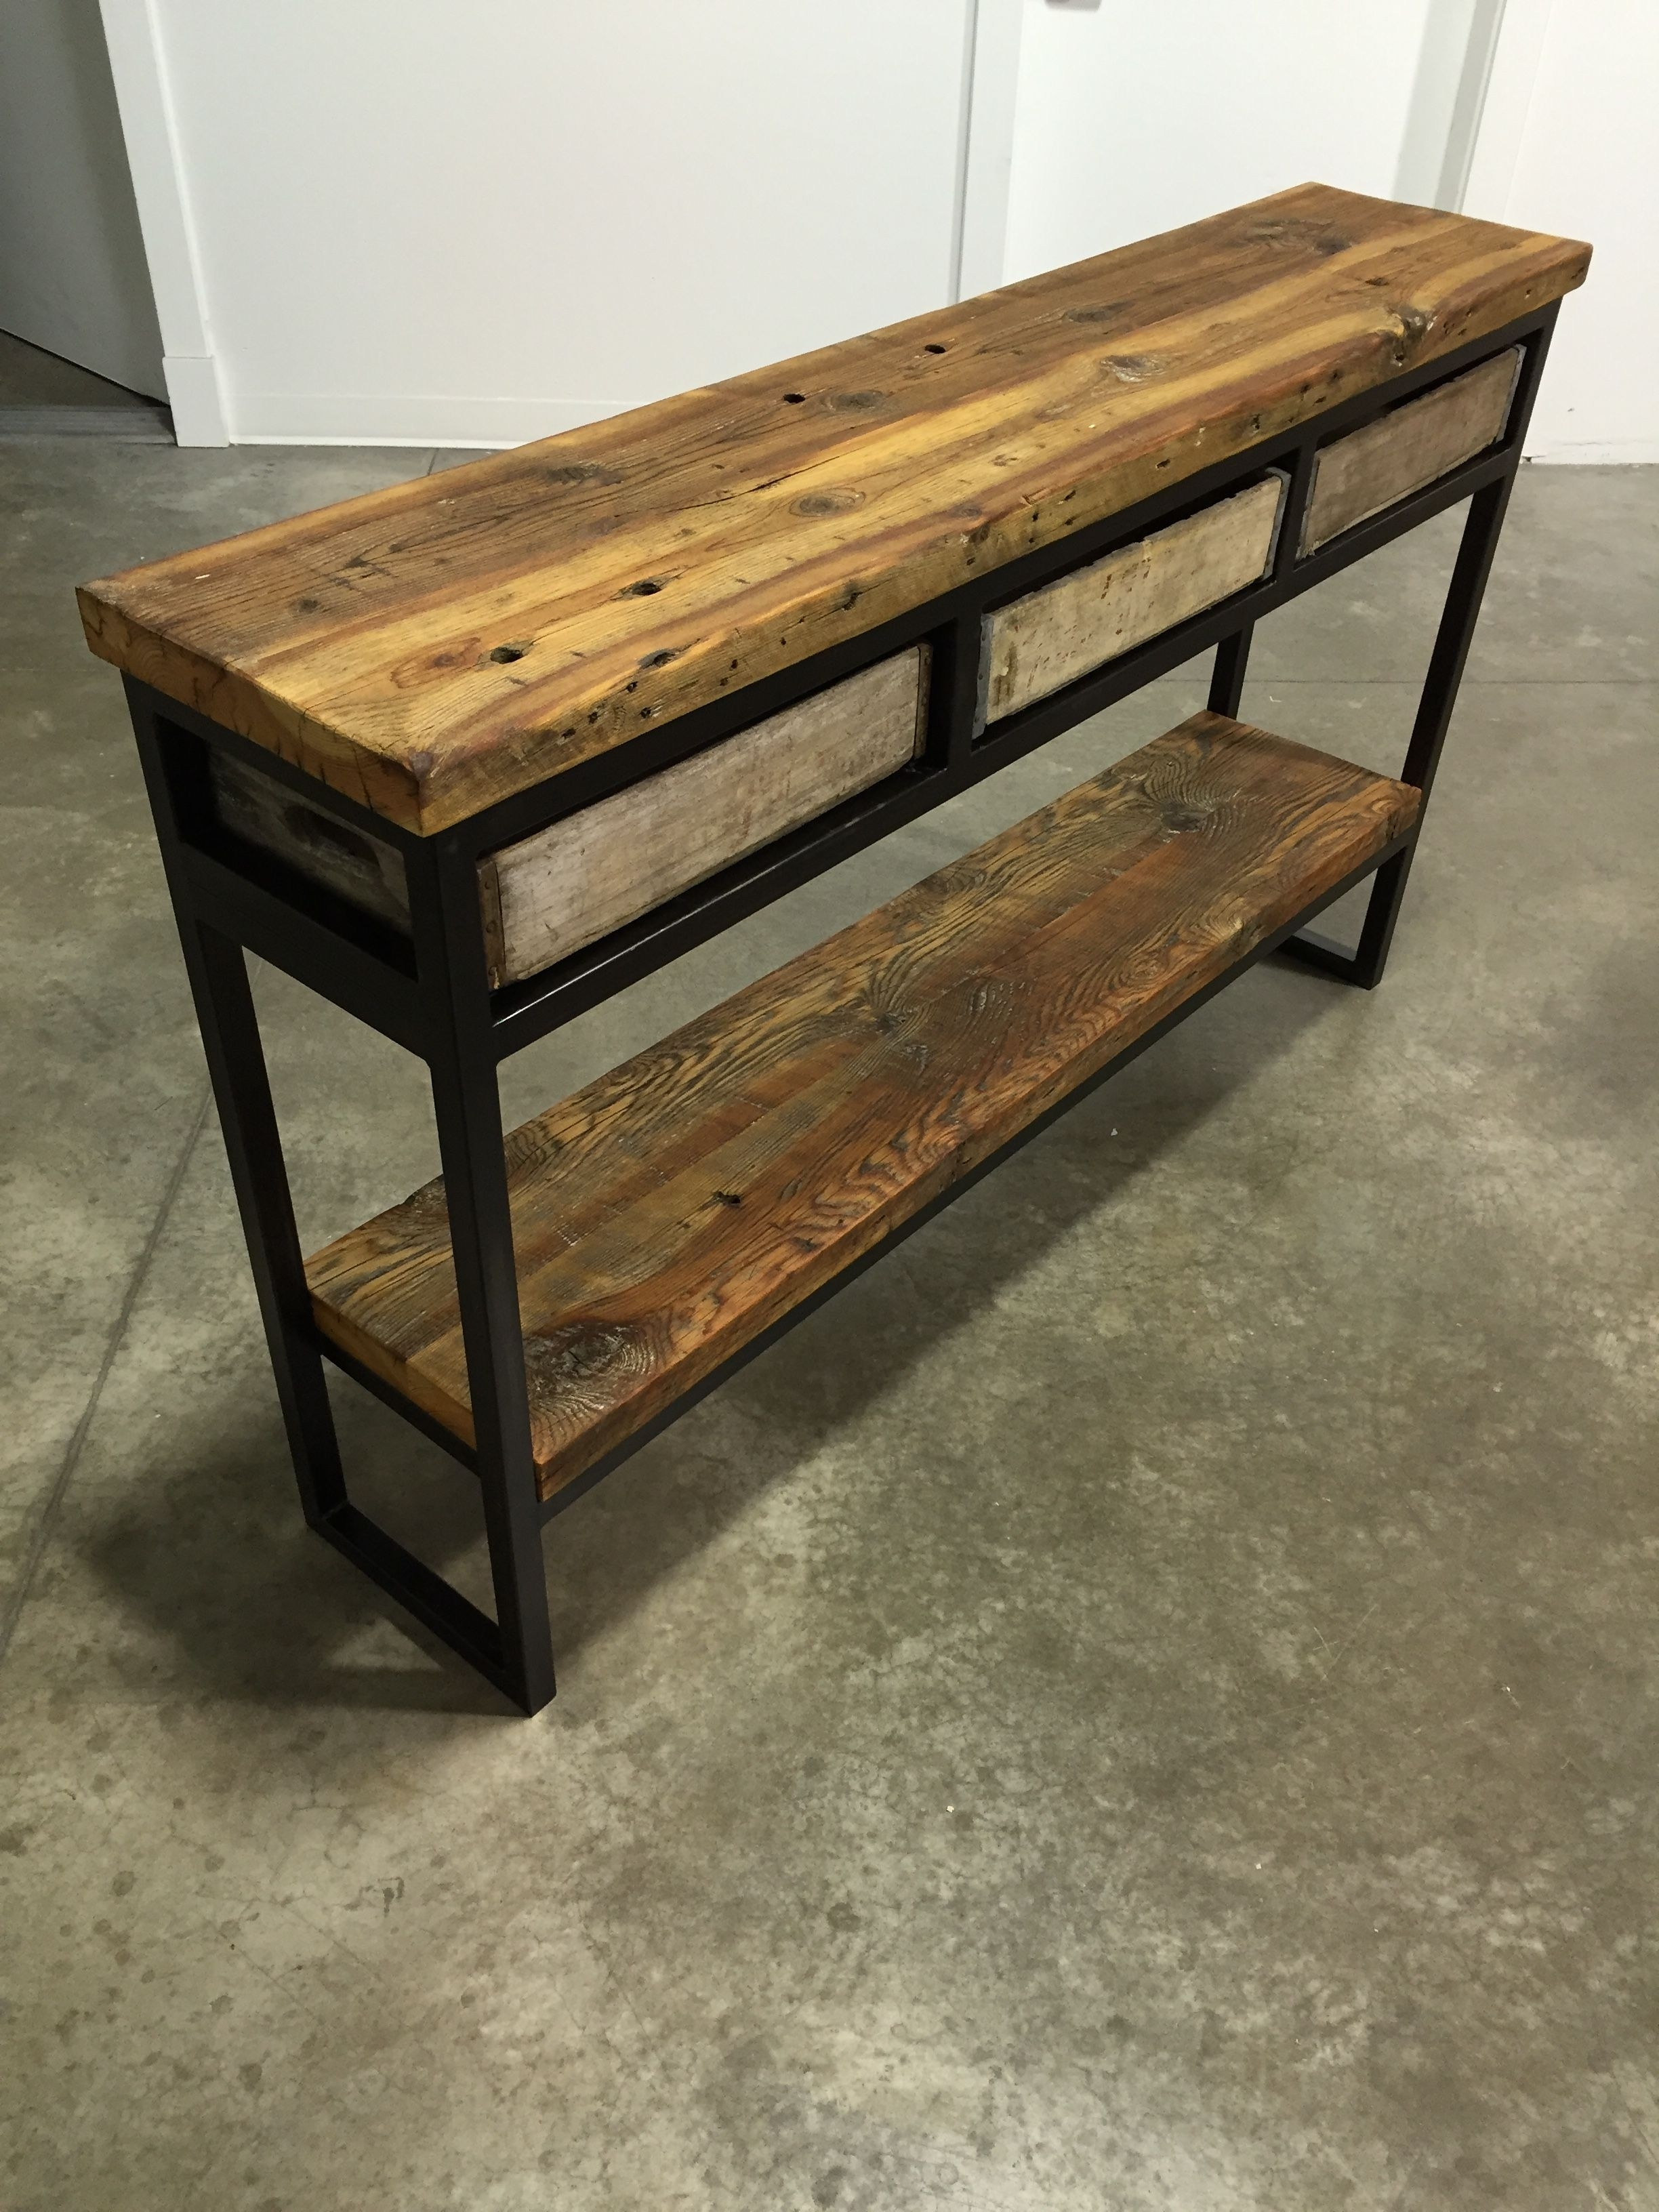 Vintage Crate Buffet/sofa Table. Reclaimed Montana Barn Wood Top with Metal Framed Reclaimed Wood Sideboards (Image 30 of 30)